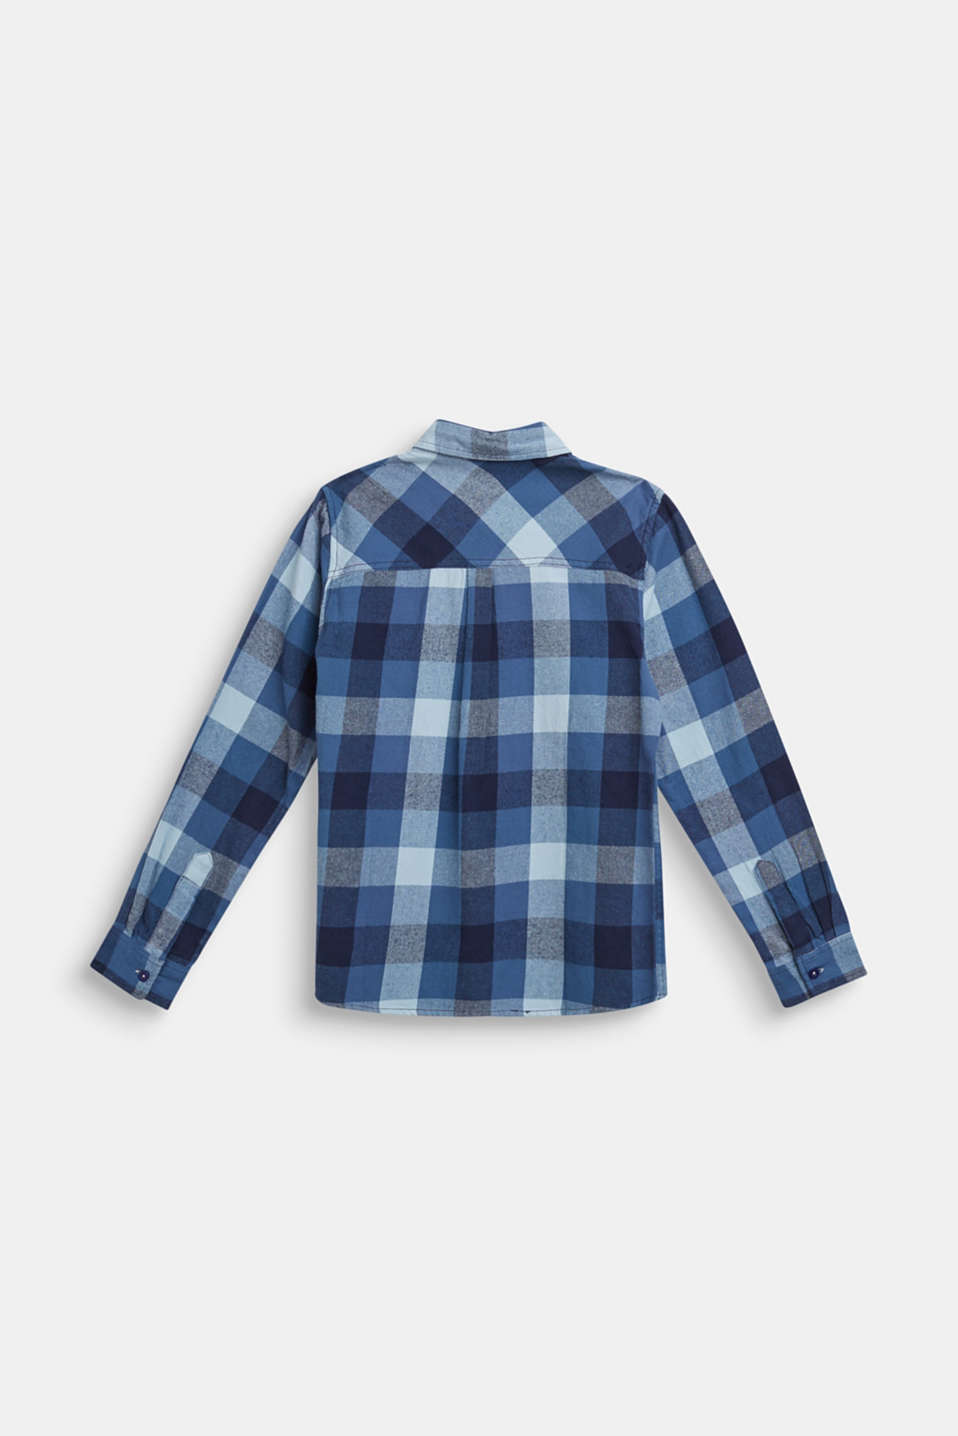 Flannel shirt with checks, 100% cotton, LCMIDNIGHT BLUE, detail image number 1